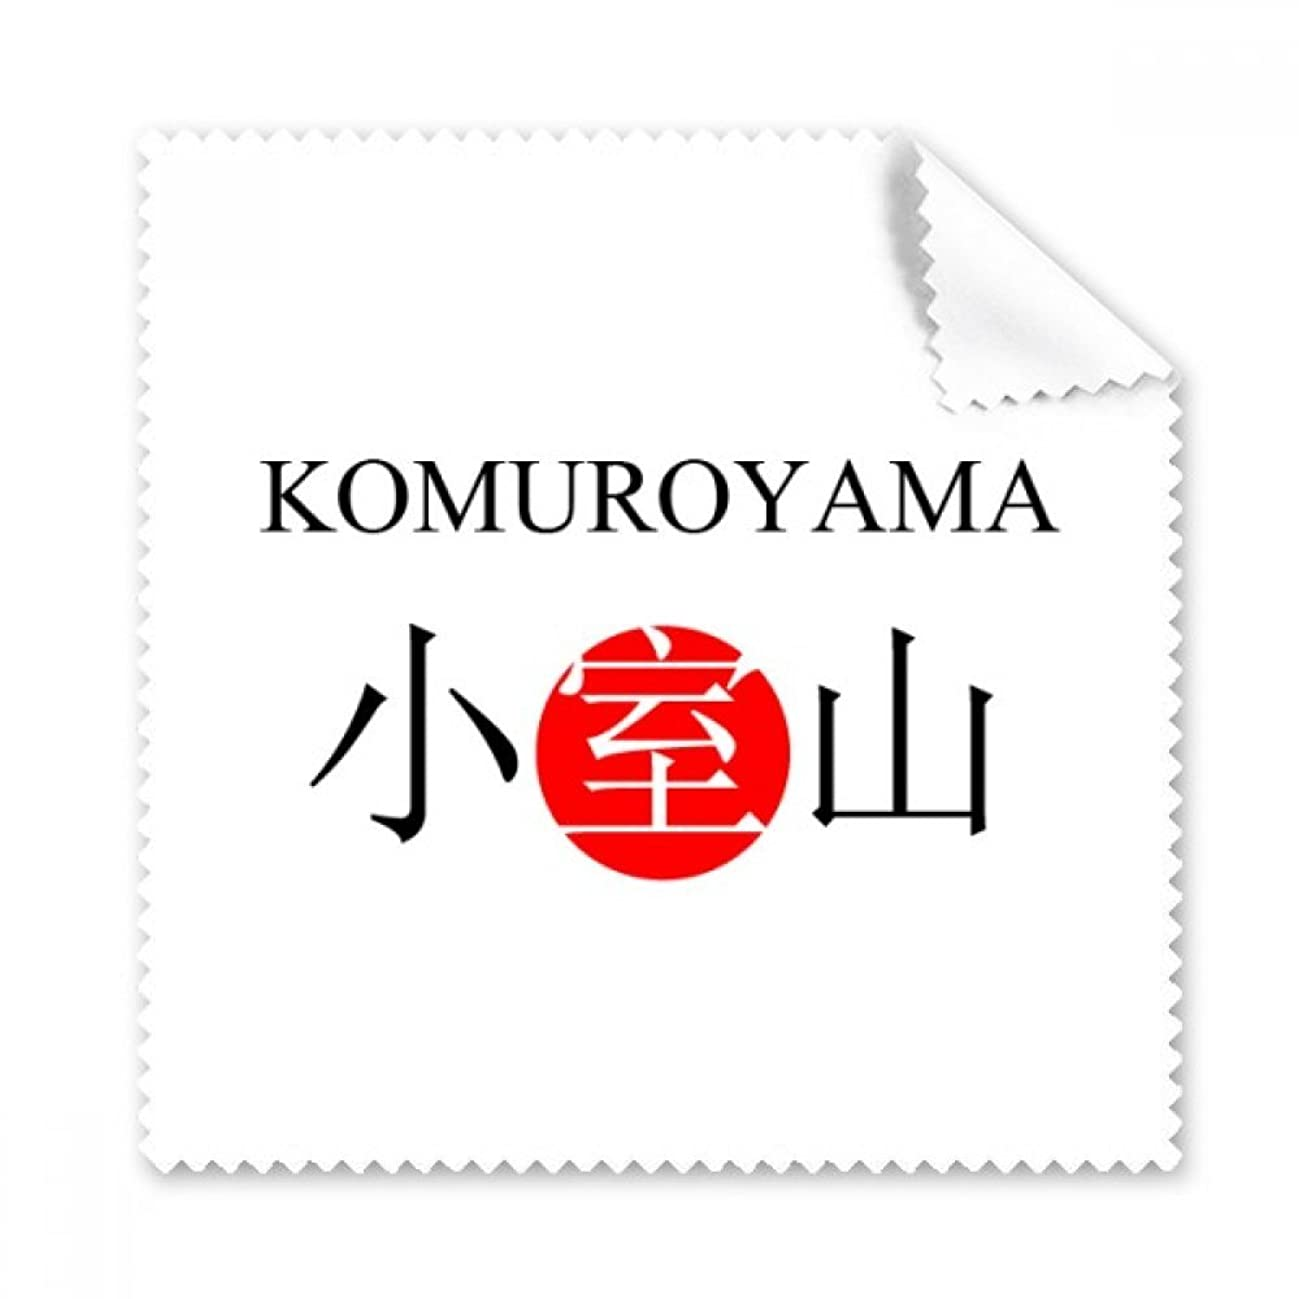 Komuroyama Japaness City Name Red Sun Glasses Cloth Cleaning Cloth Phone Screen Cleaner 5pcs Gift